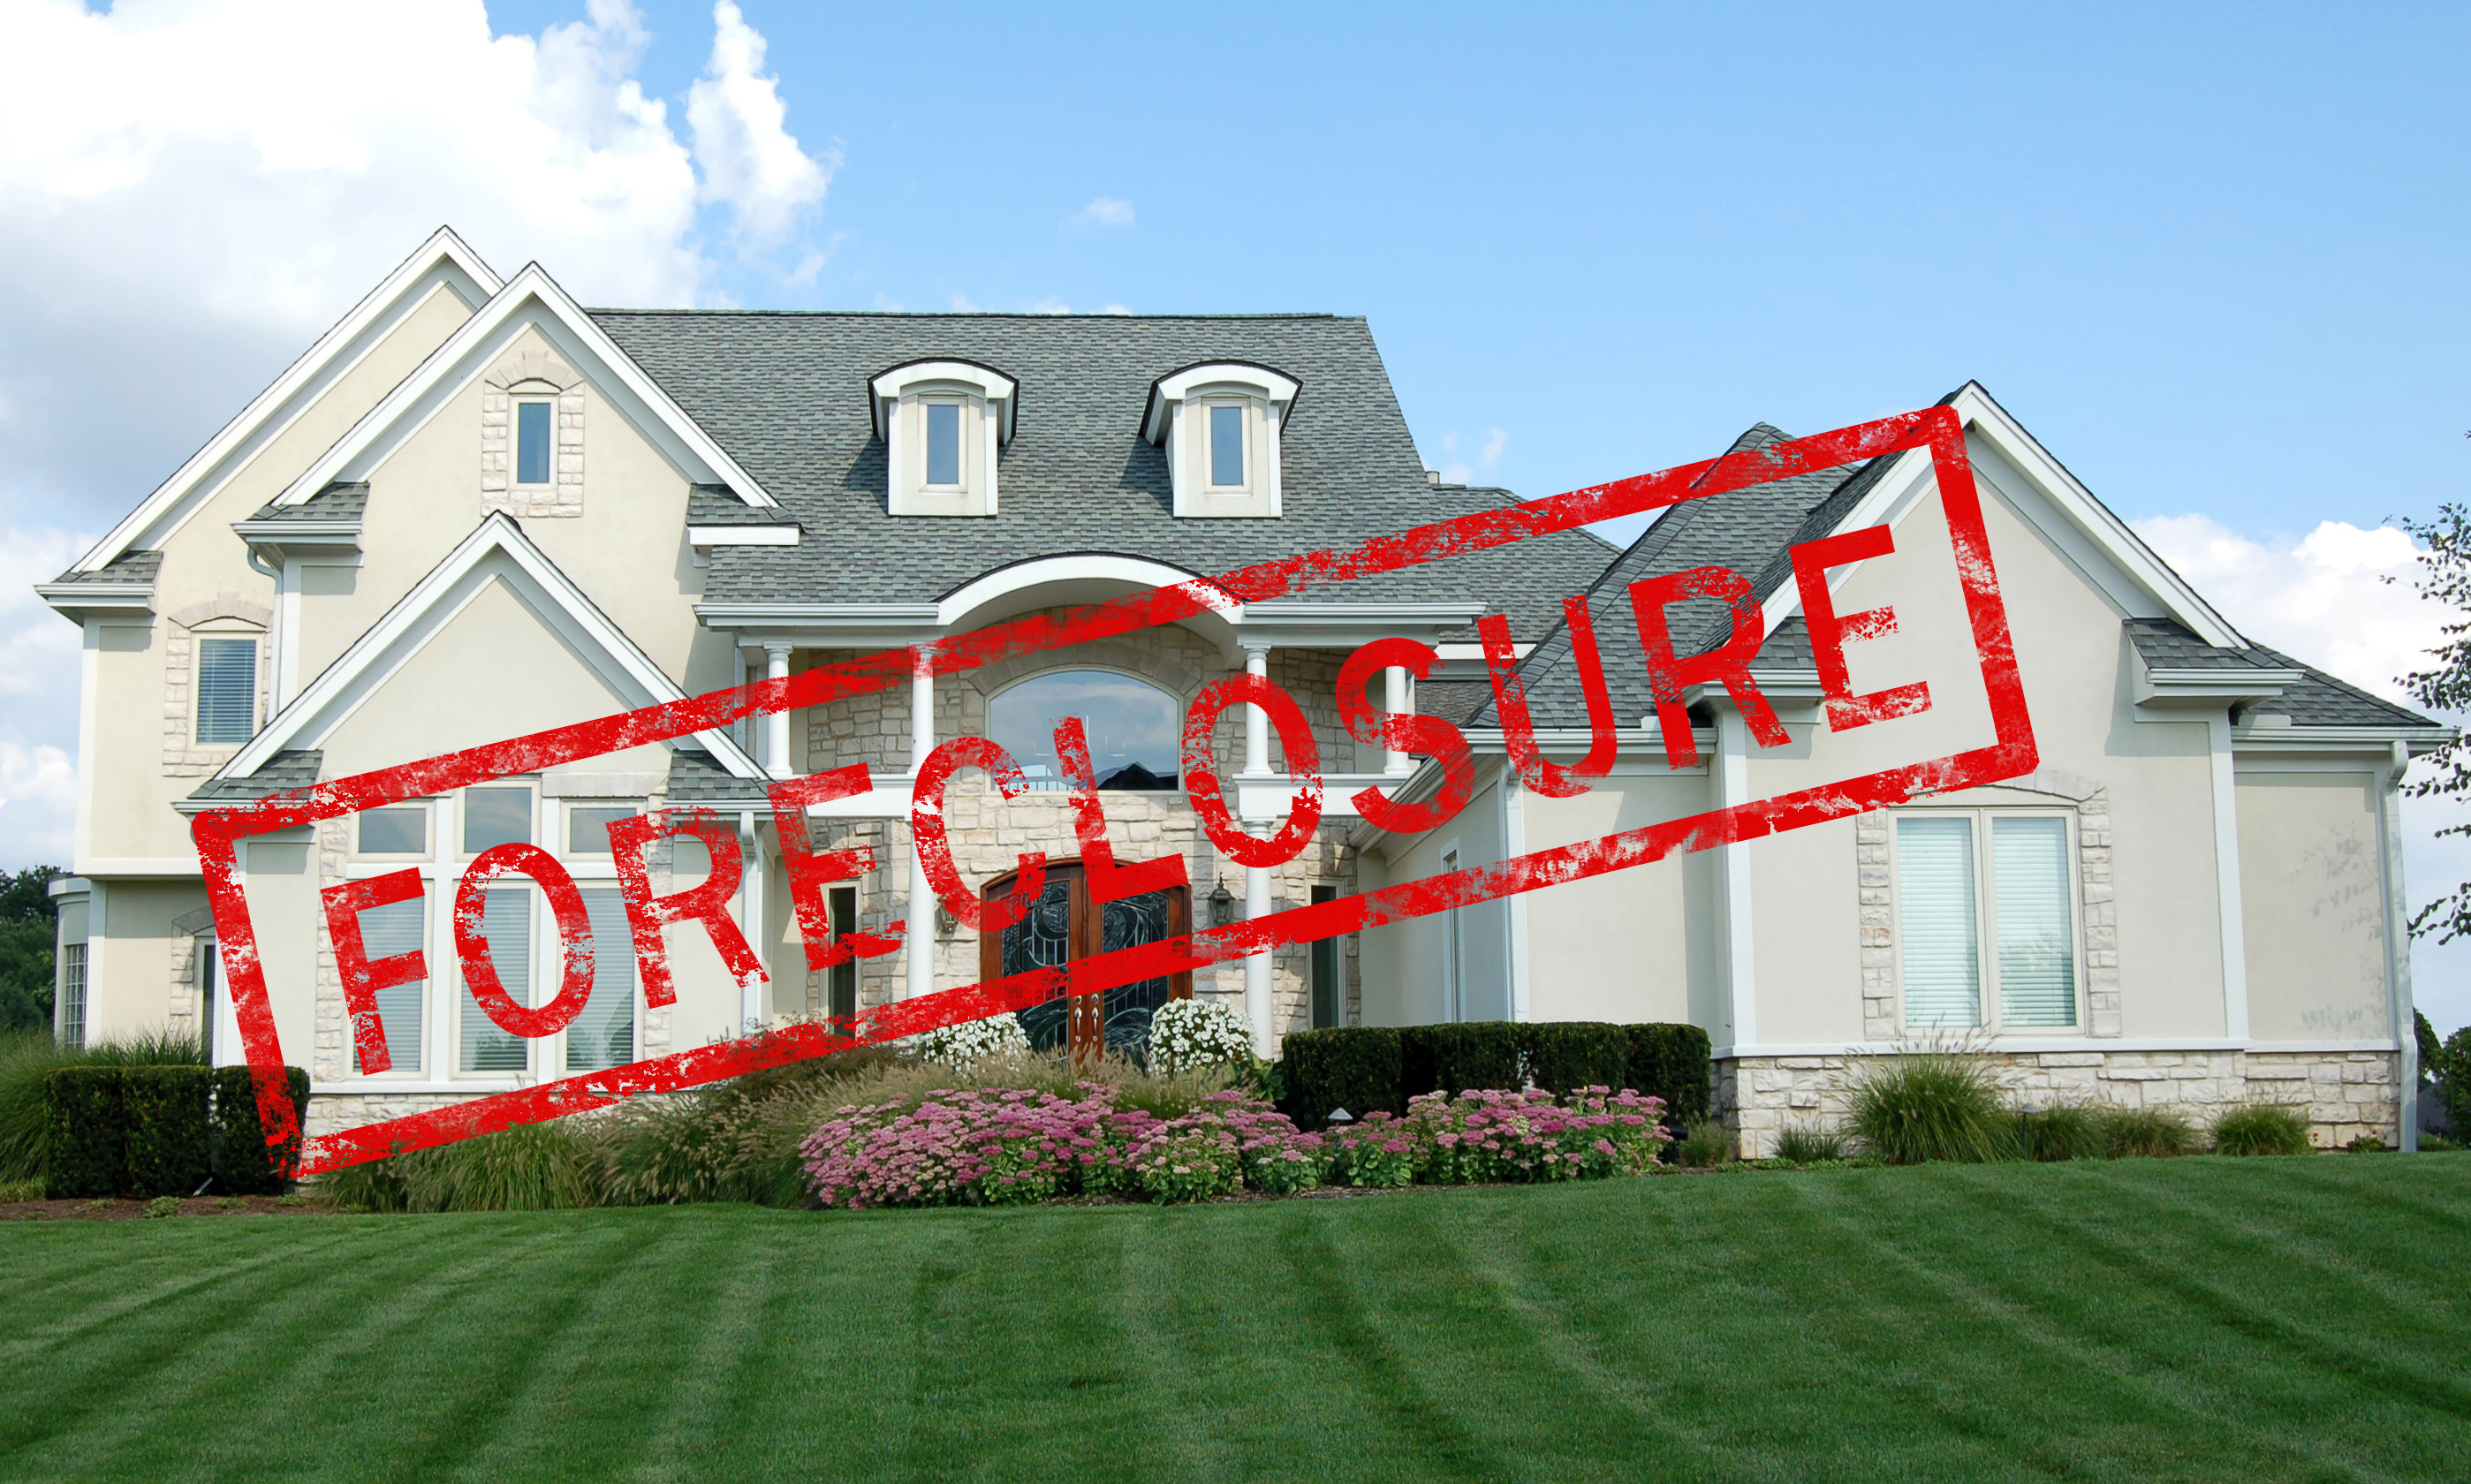 Call Ascension Appraisal when you need valuations of Worcester foreclosures